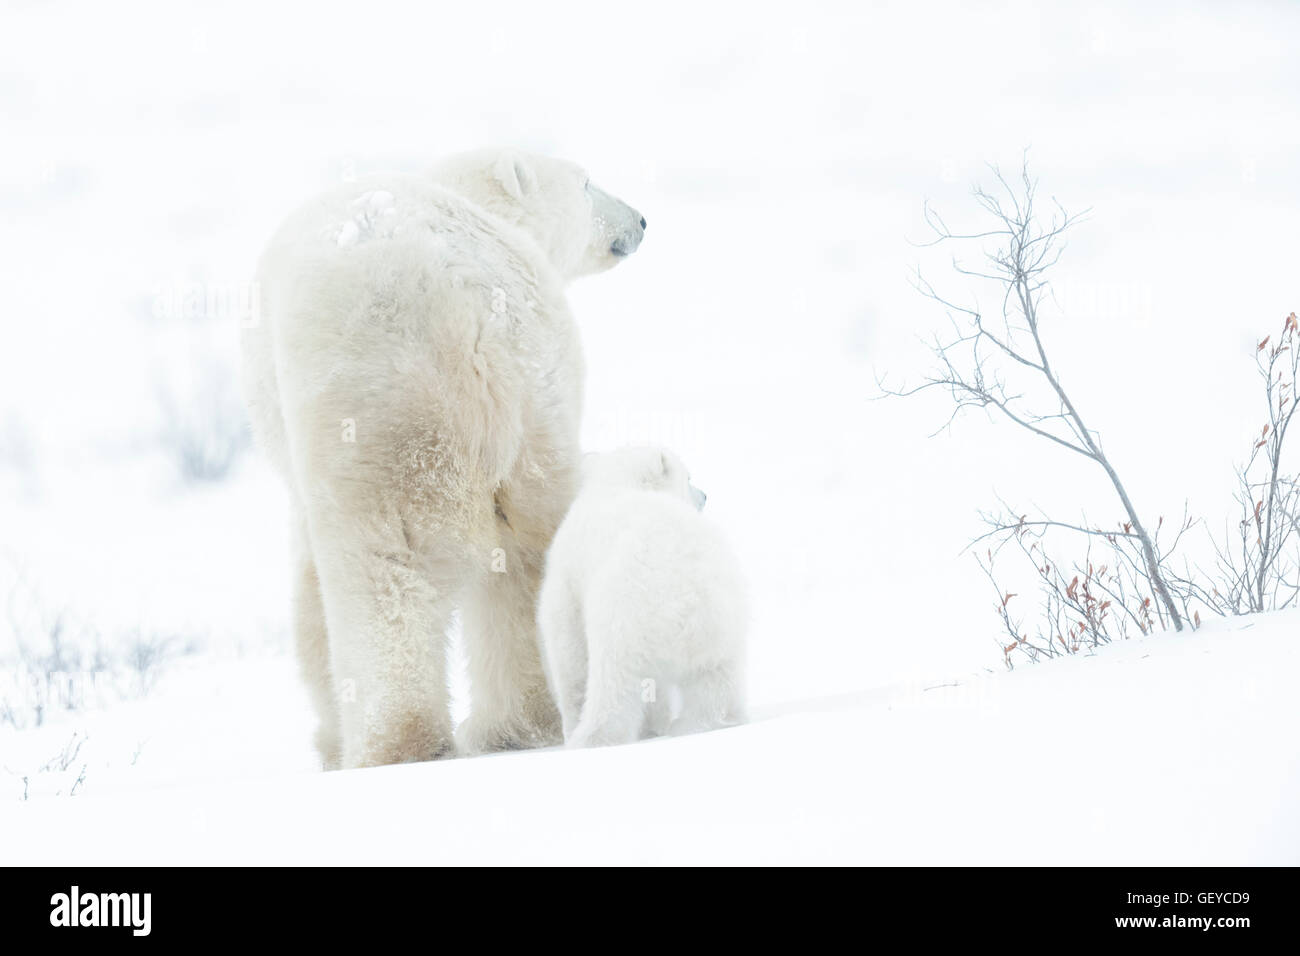 Polar bear mother (Ursus maritimus) with two cubs from behind, Wapusk National Park, Manitoba, Canada - Stock Image